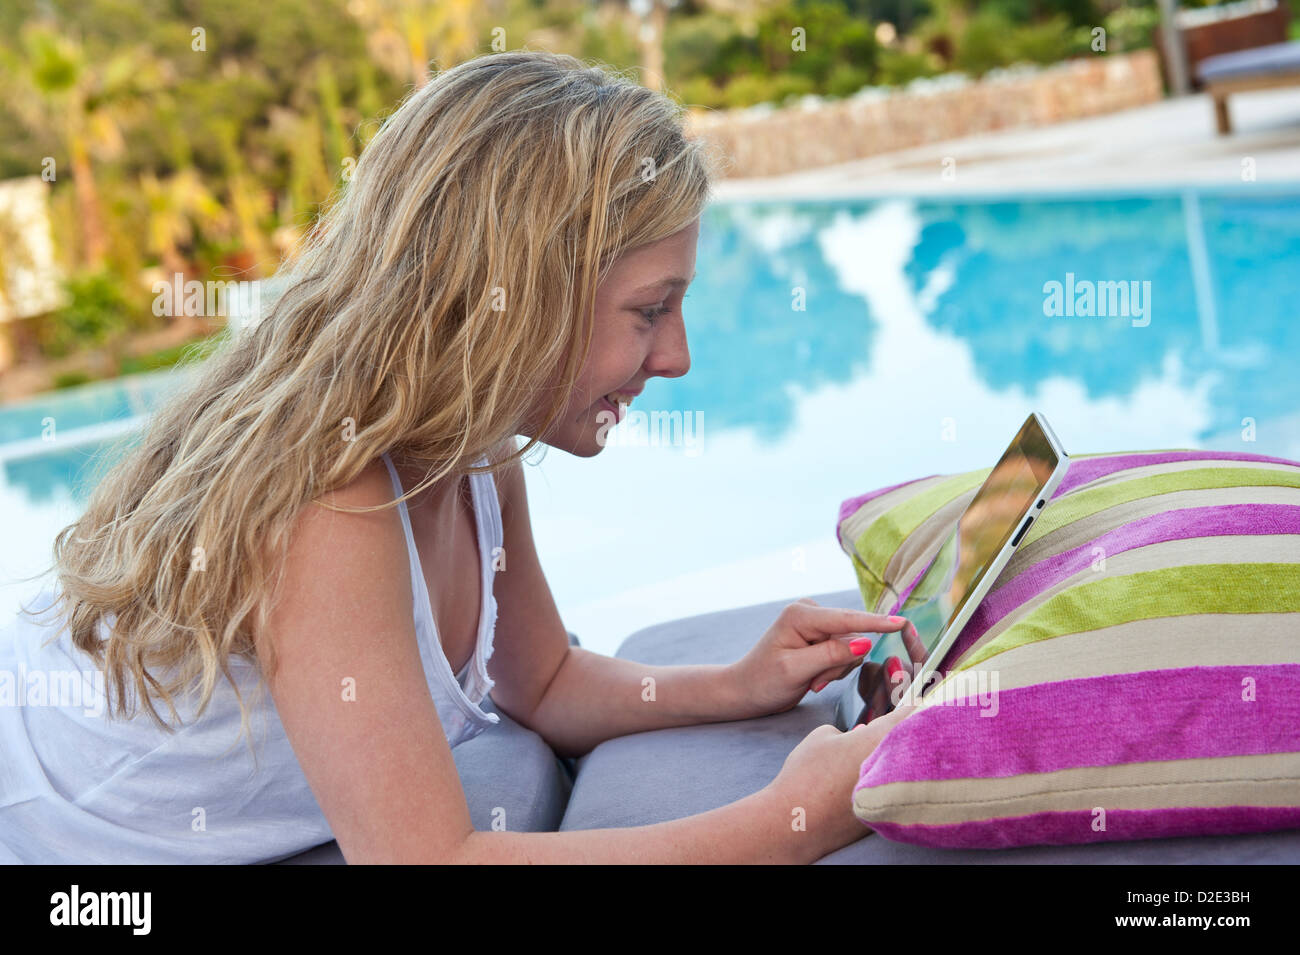 IPAD STREAMING DOWNLOAD iTunes FaceTime 4g abroad Teenage girl using